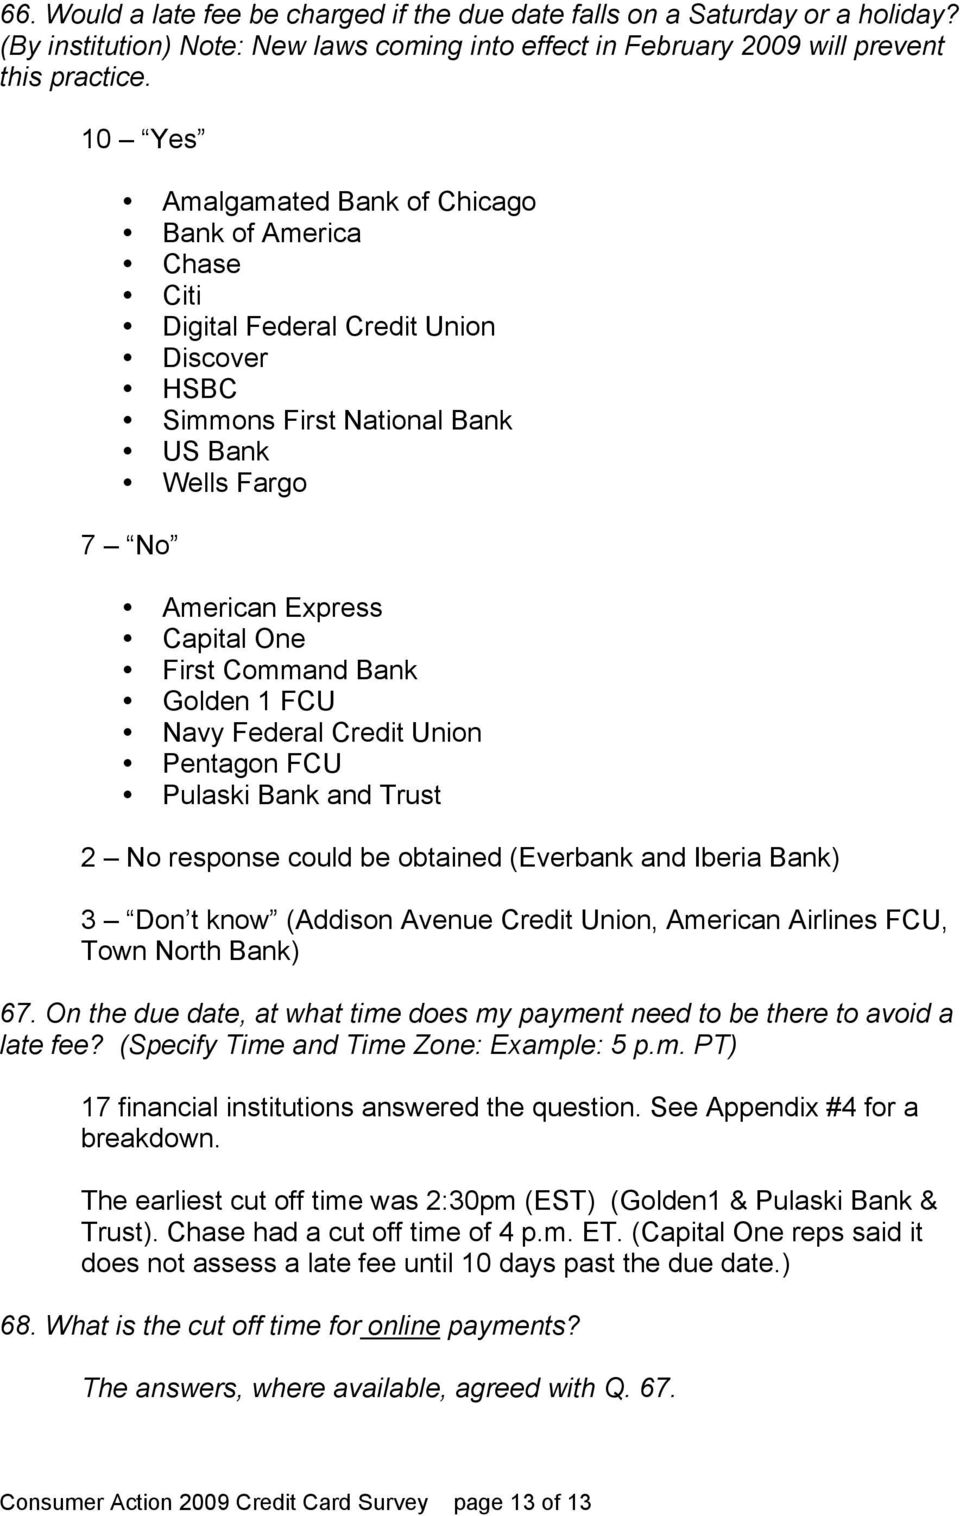 Consumer Action 2009 Credit Card Survey - PDF